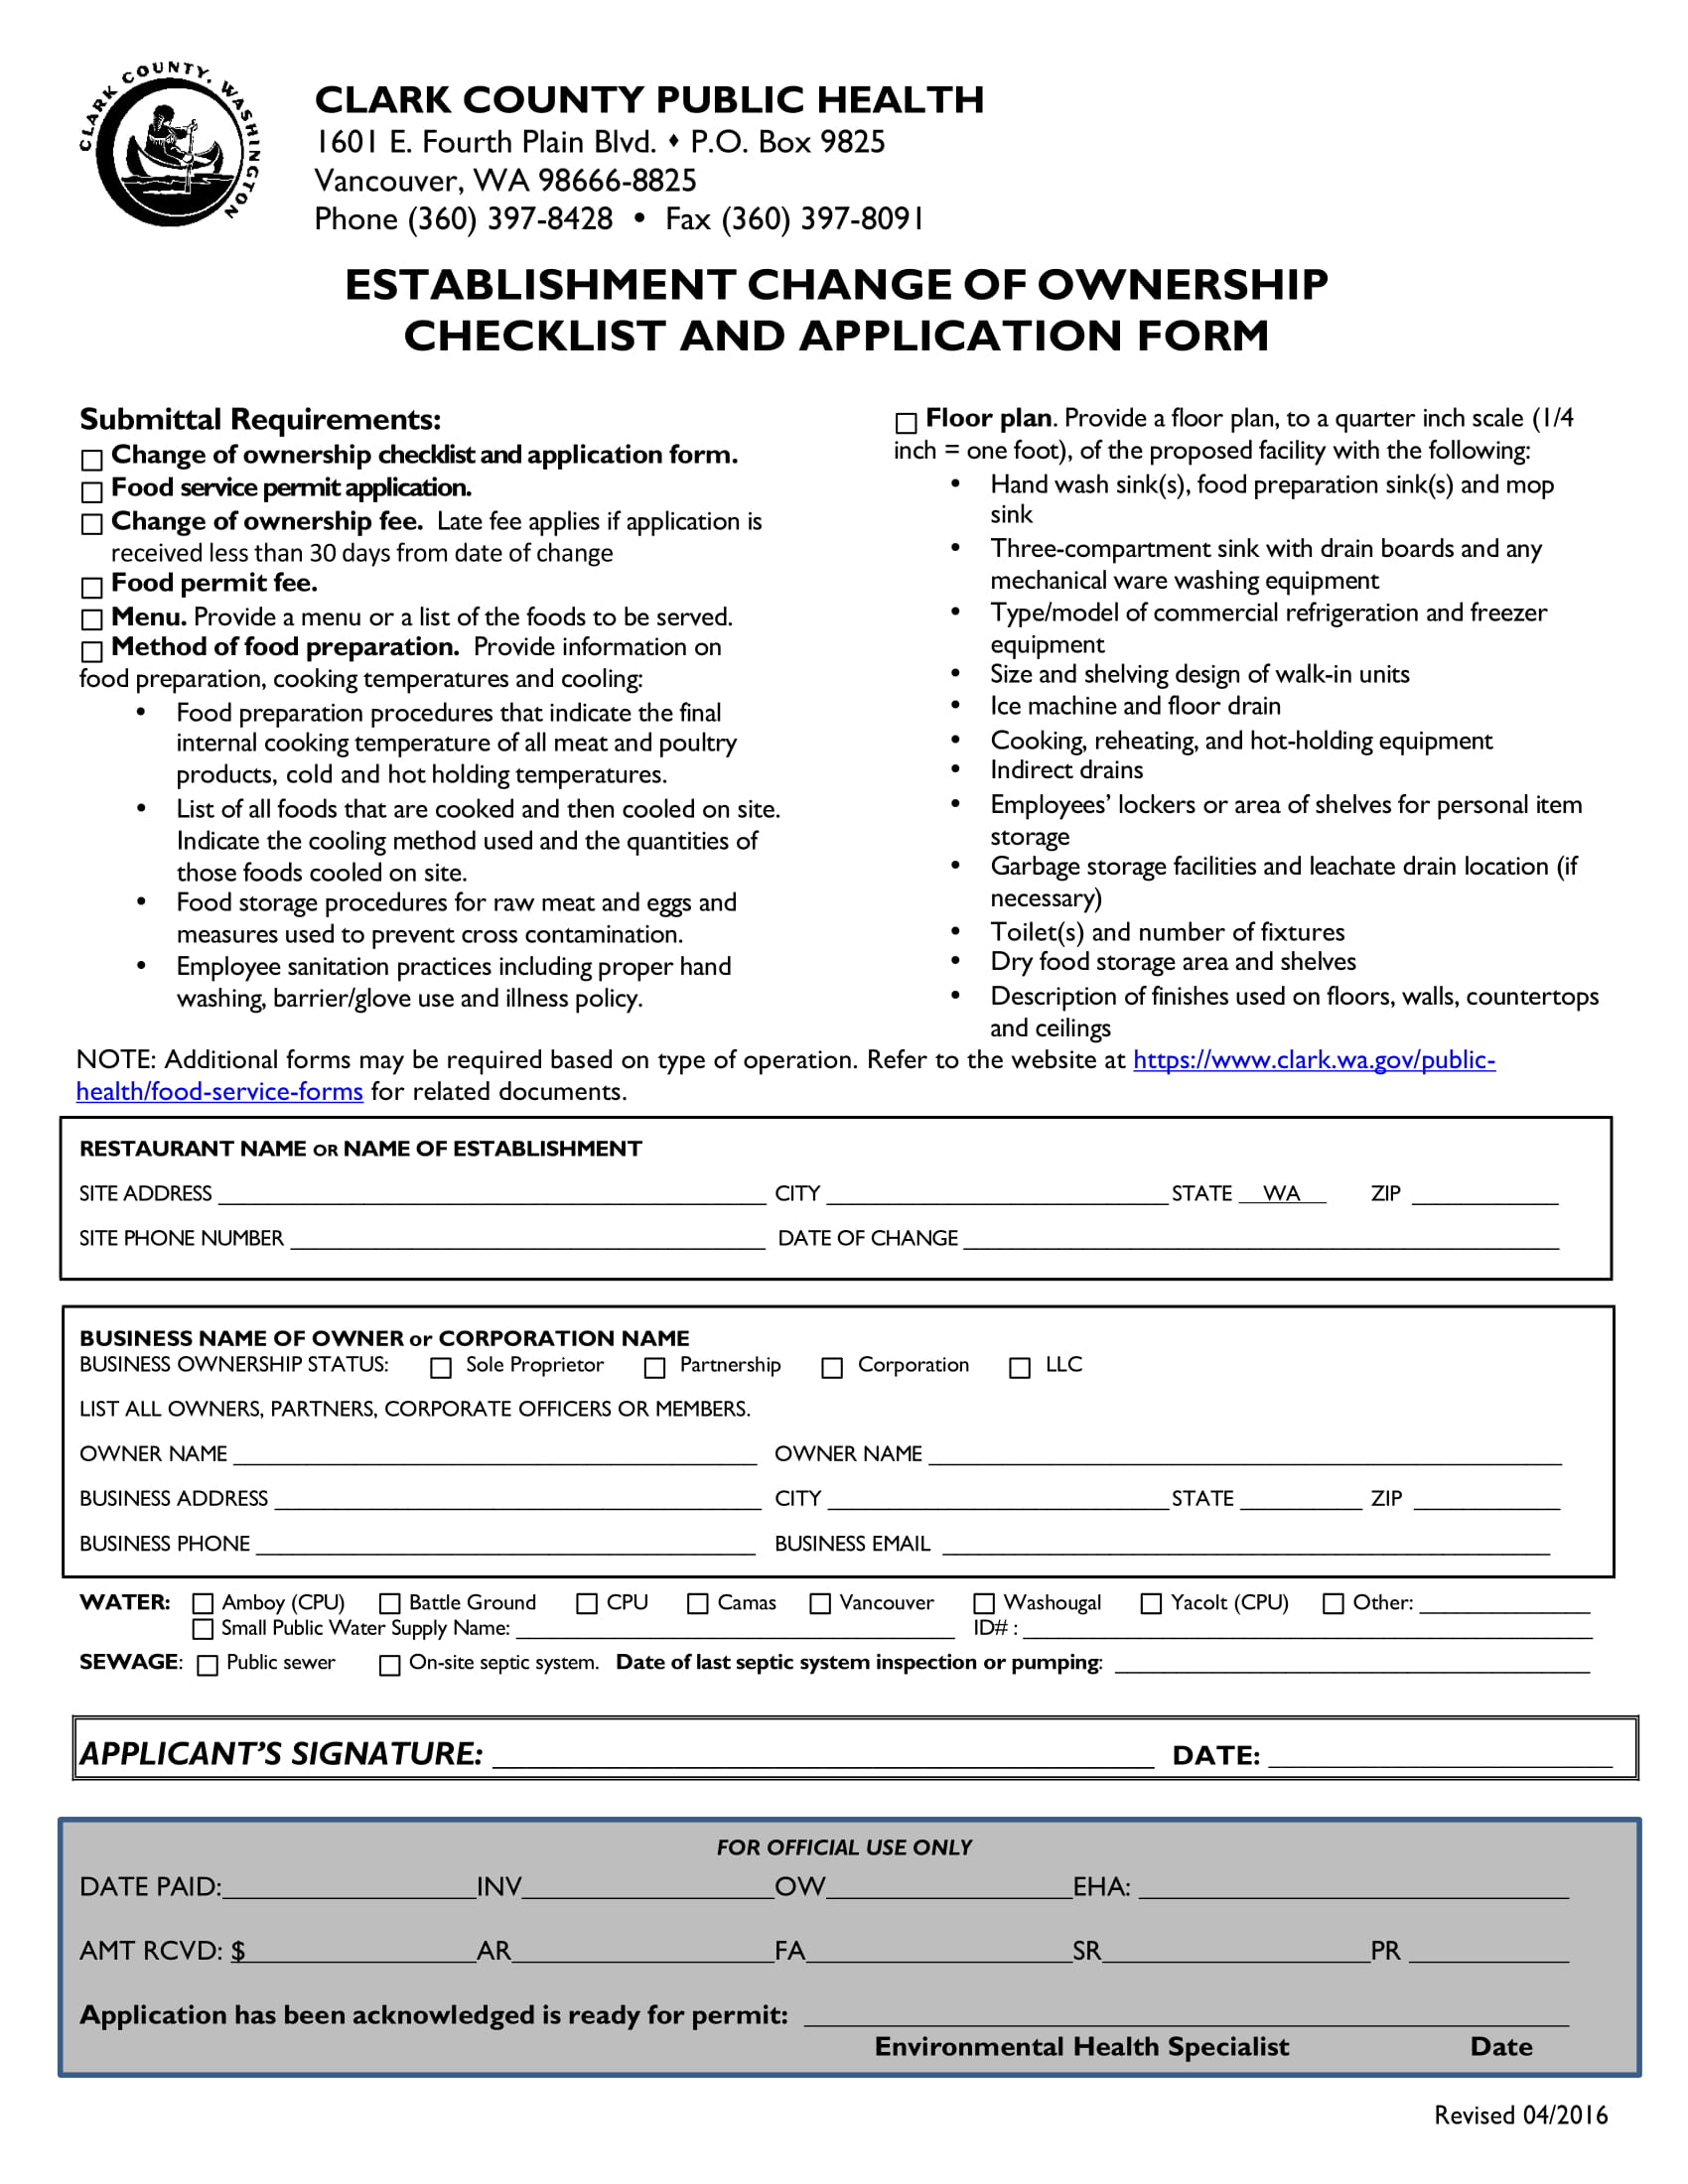 restaurant change of ownership application checklist form 1